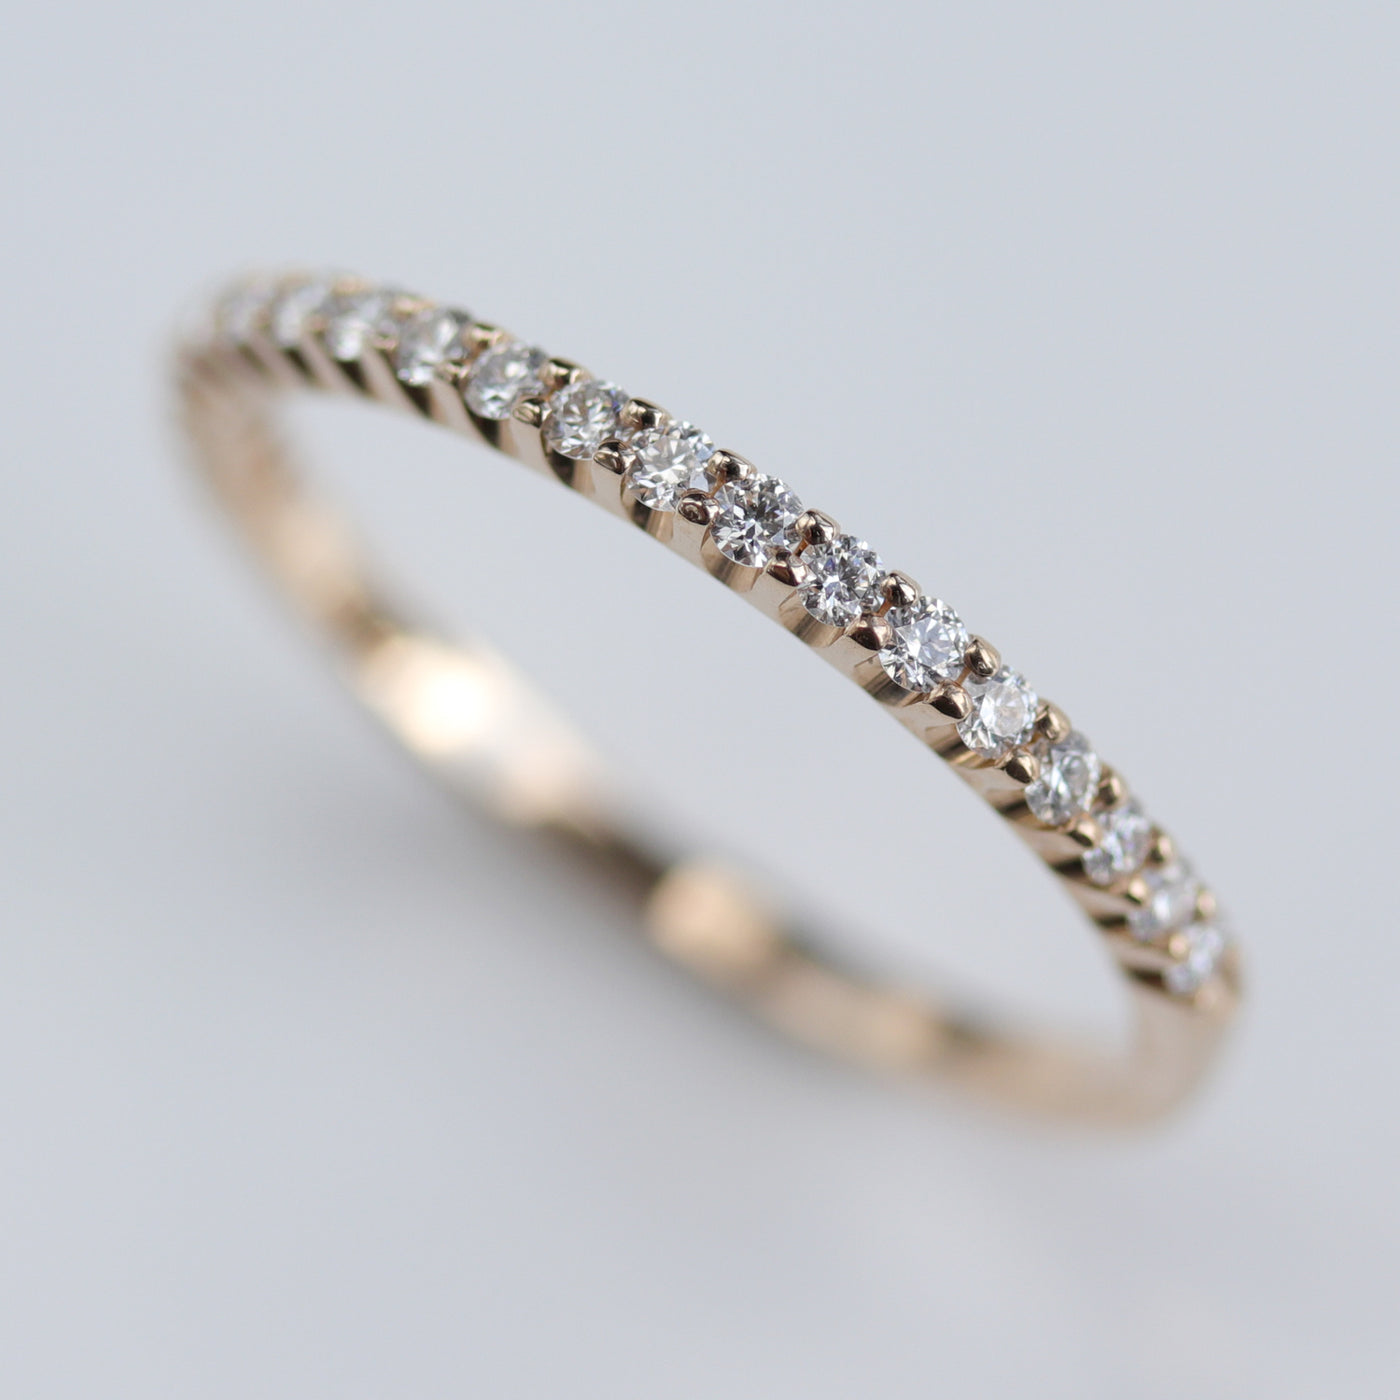 Size 7 - 1.5mm Diamond Half Eternity Band with Flat Sides